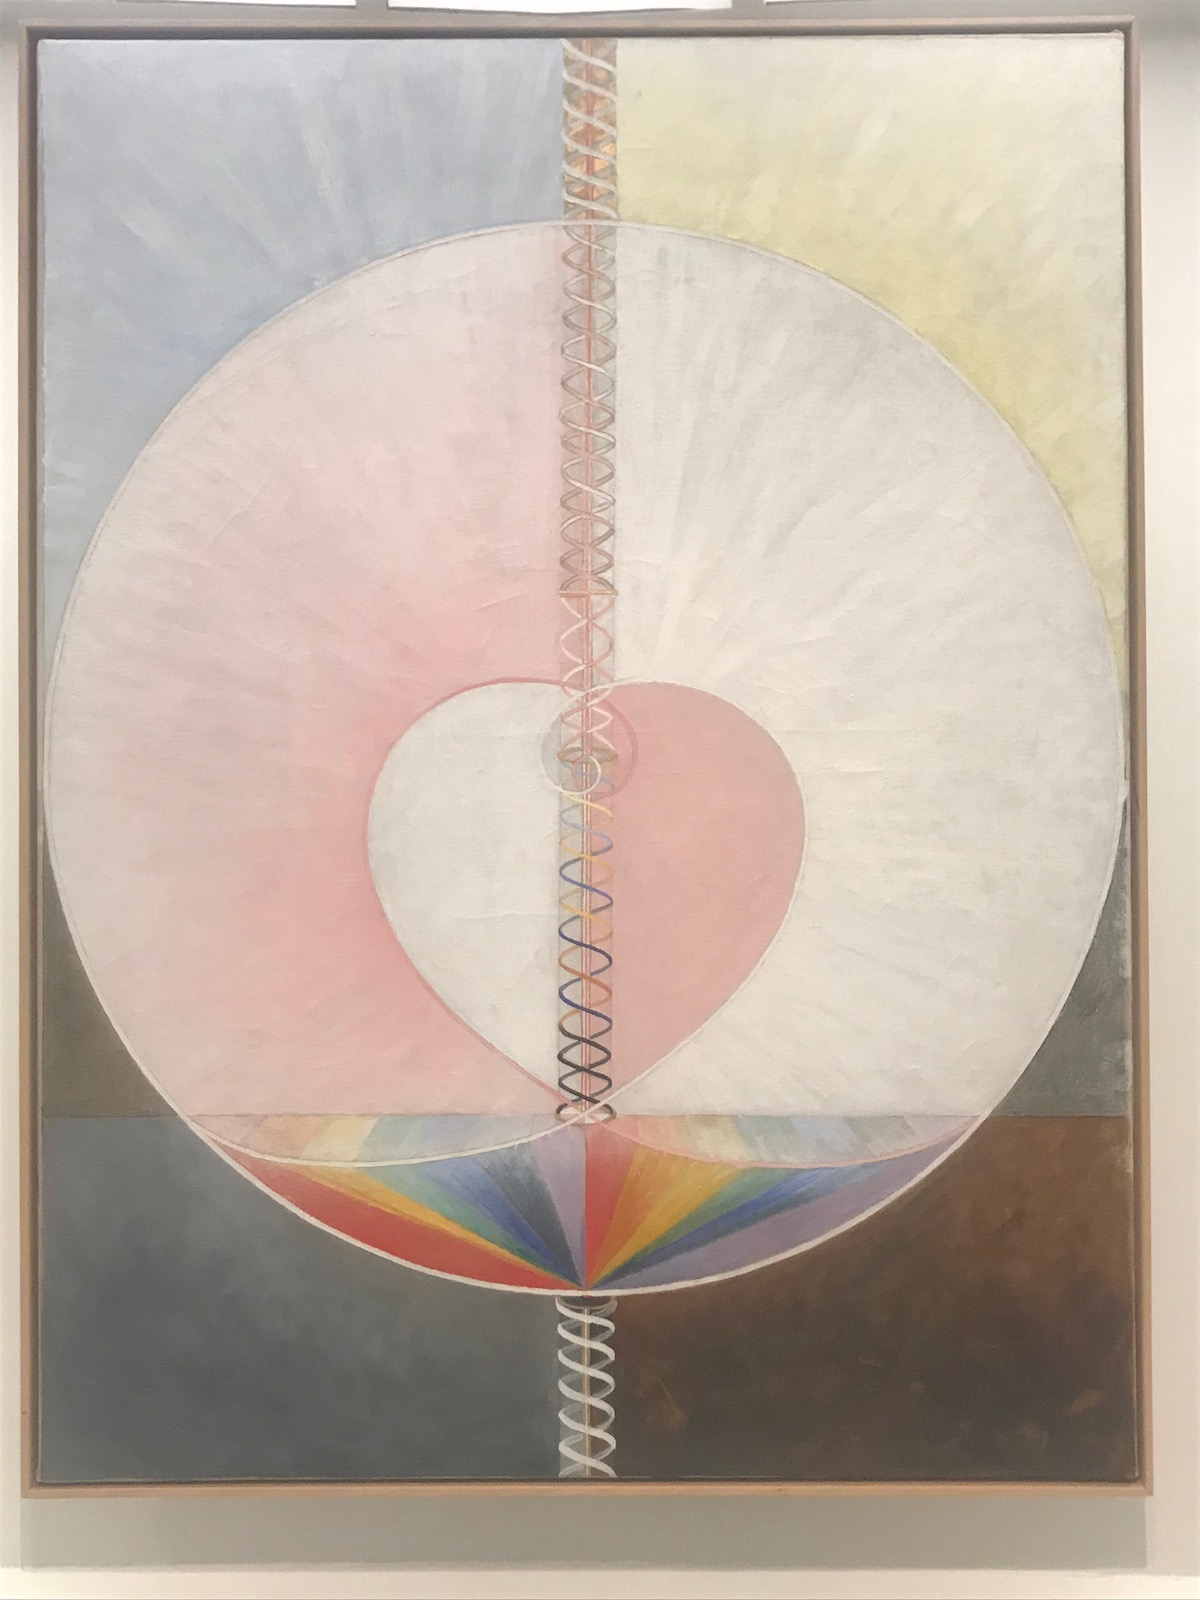 Mario @ Guggenheim Museum - Hilma af Klint: Paintings for the Future | petit-swag.com